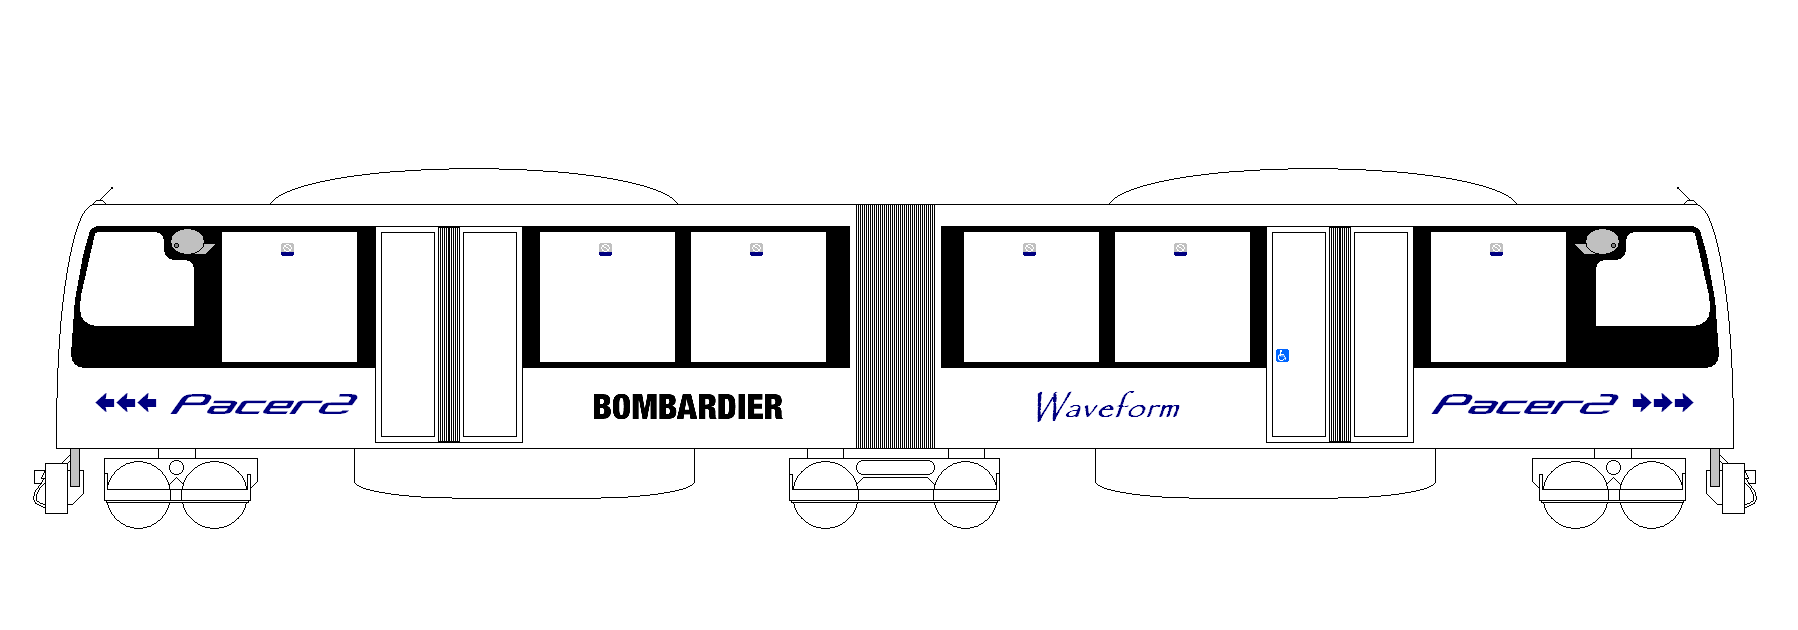 File:Wiki new railbus.PNG.